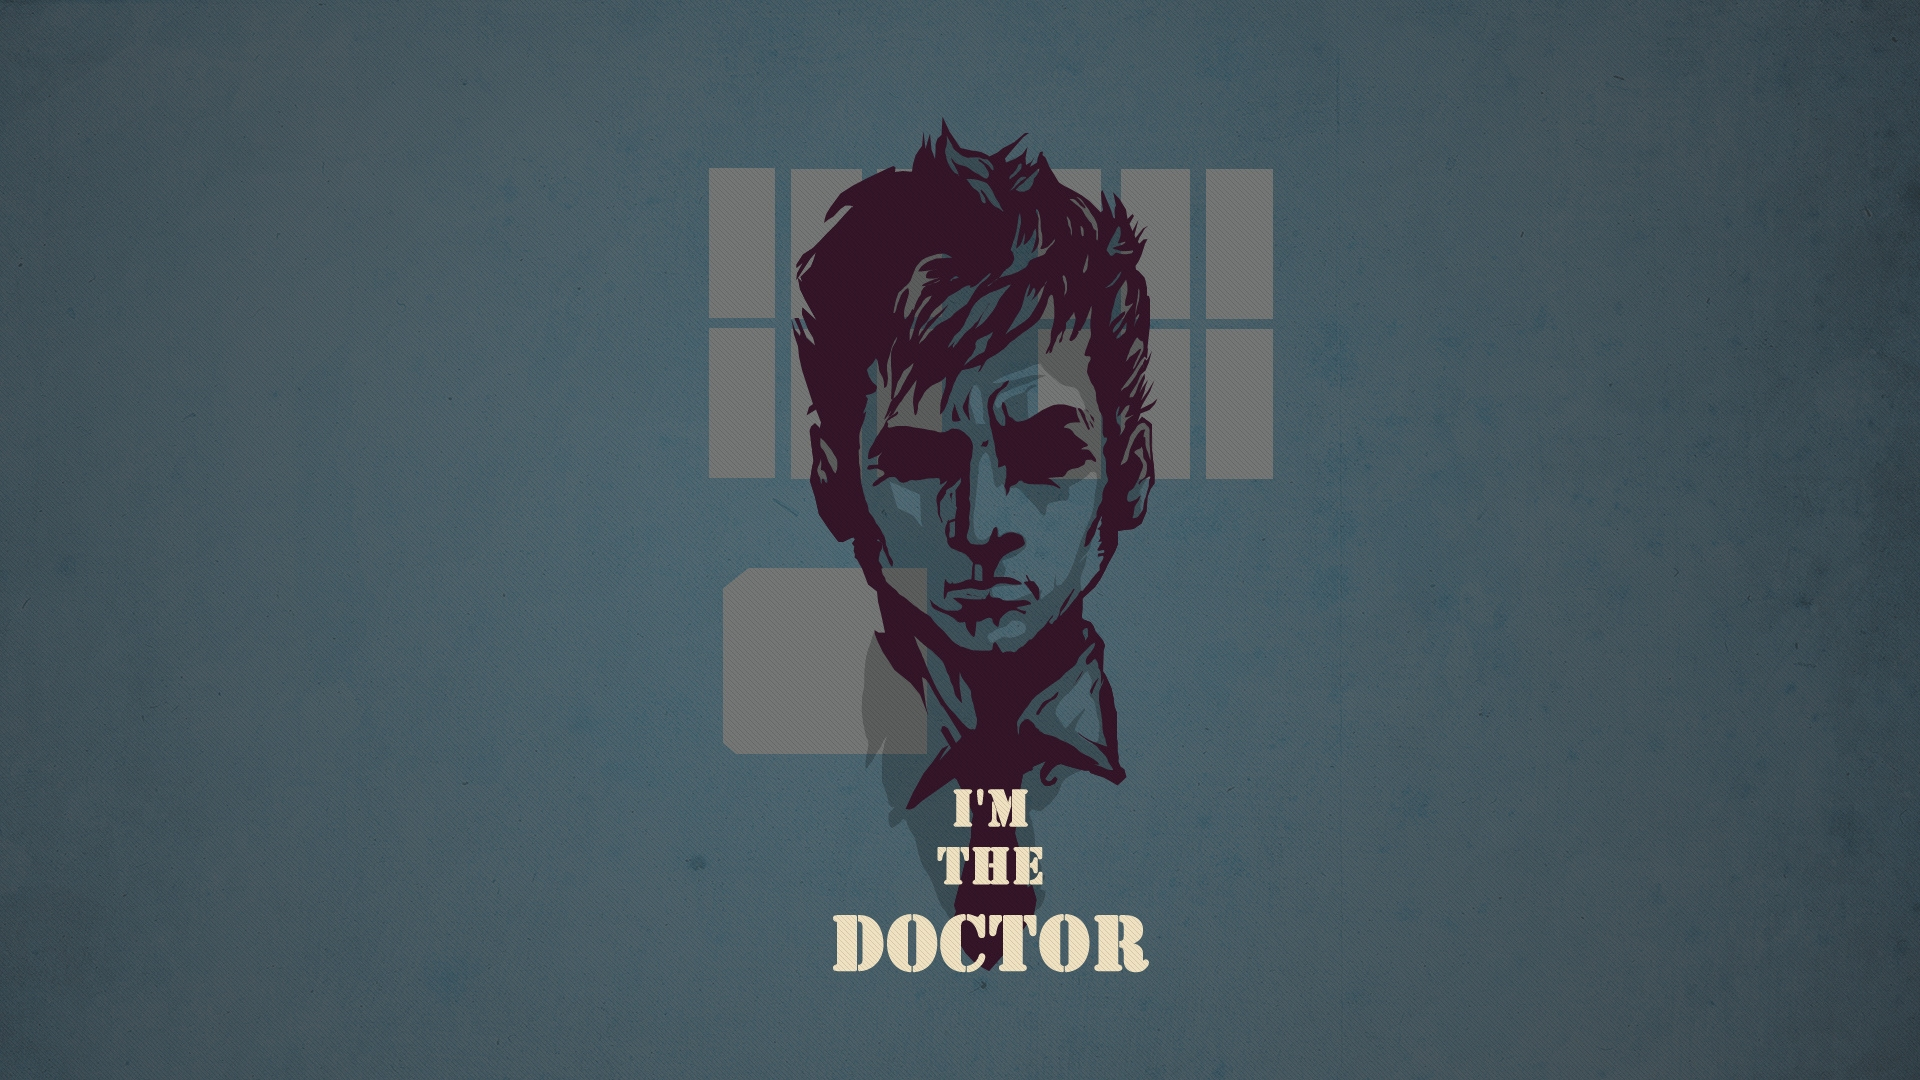 Download Wallpaper 1920x1080 Doctor Who Tardis Tennant Full Hd